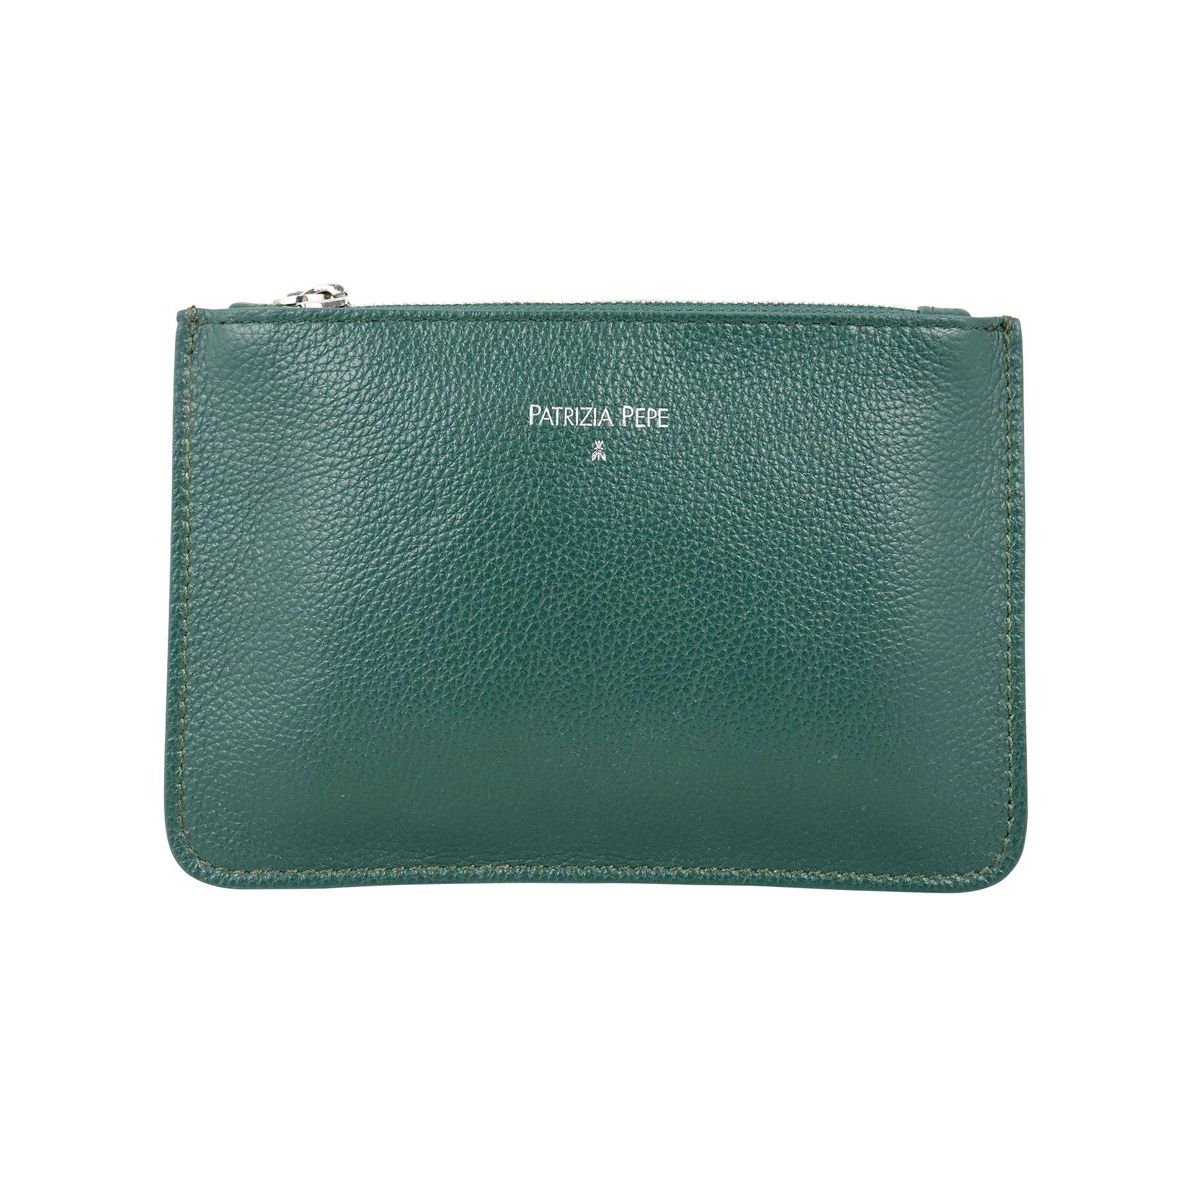 Clutch bag in hammered leather Green Patrizia Pepe